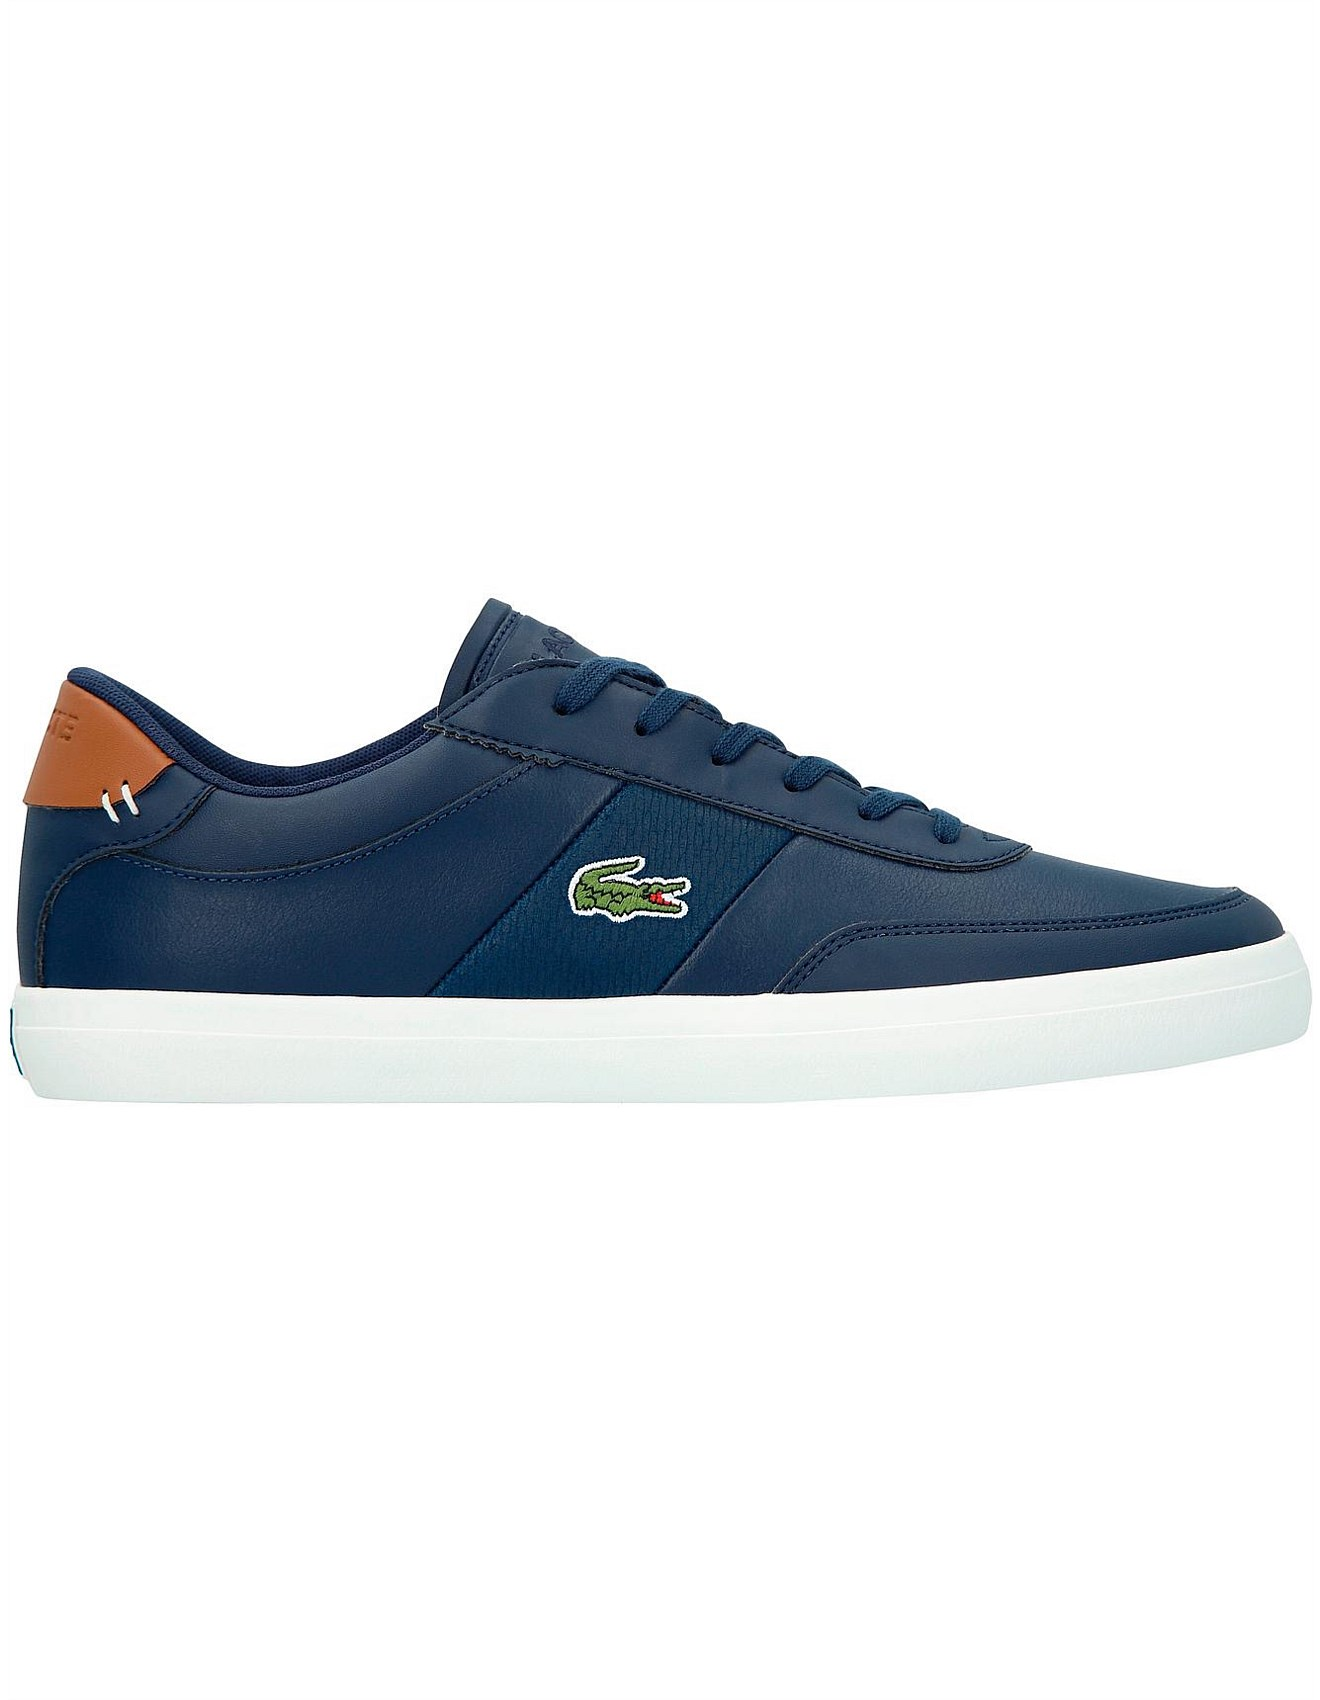 368c98a59 COURT-MASTER 318 2 CAM NVY BRW. 1. Zoom. Lacoste